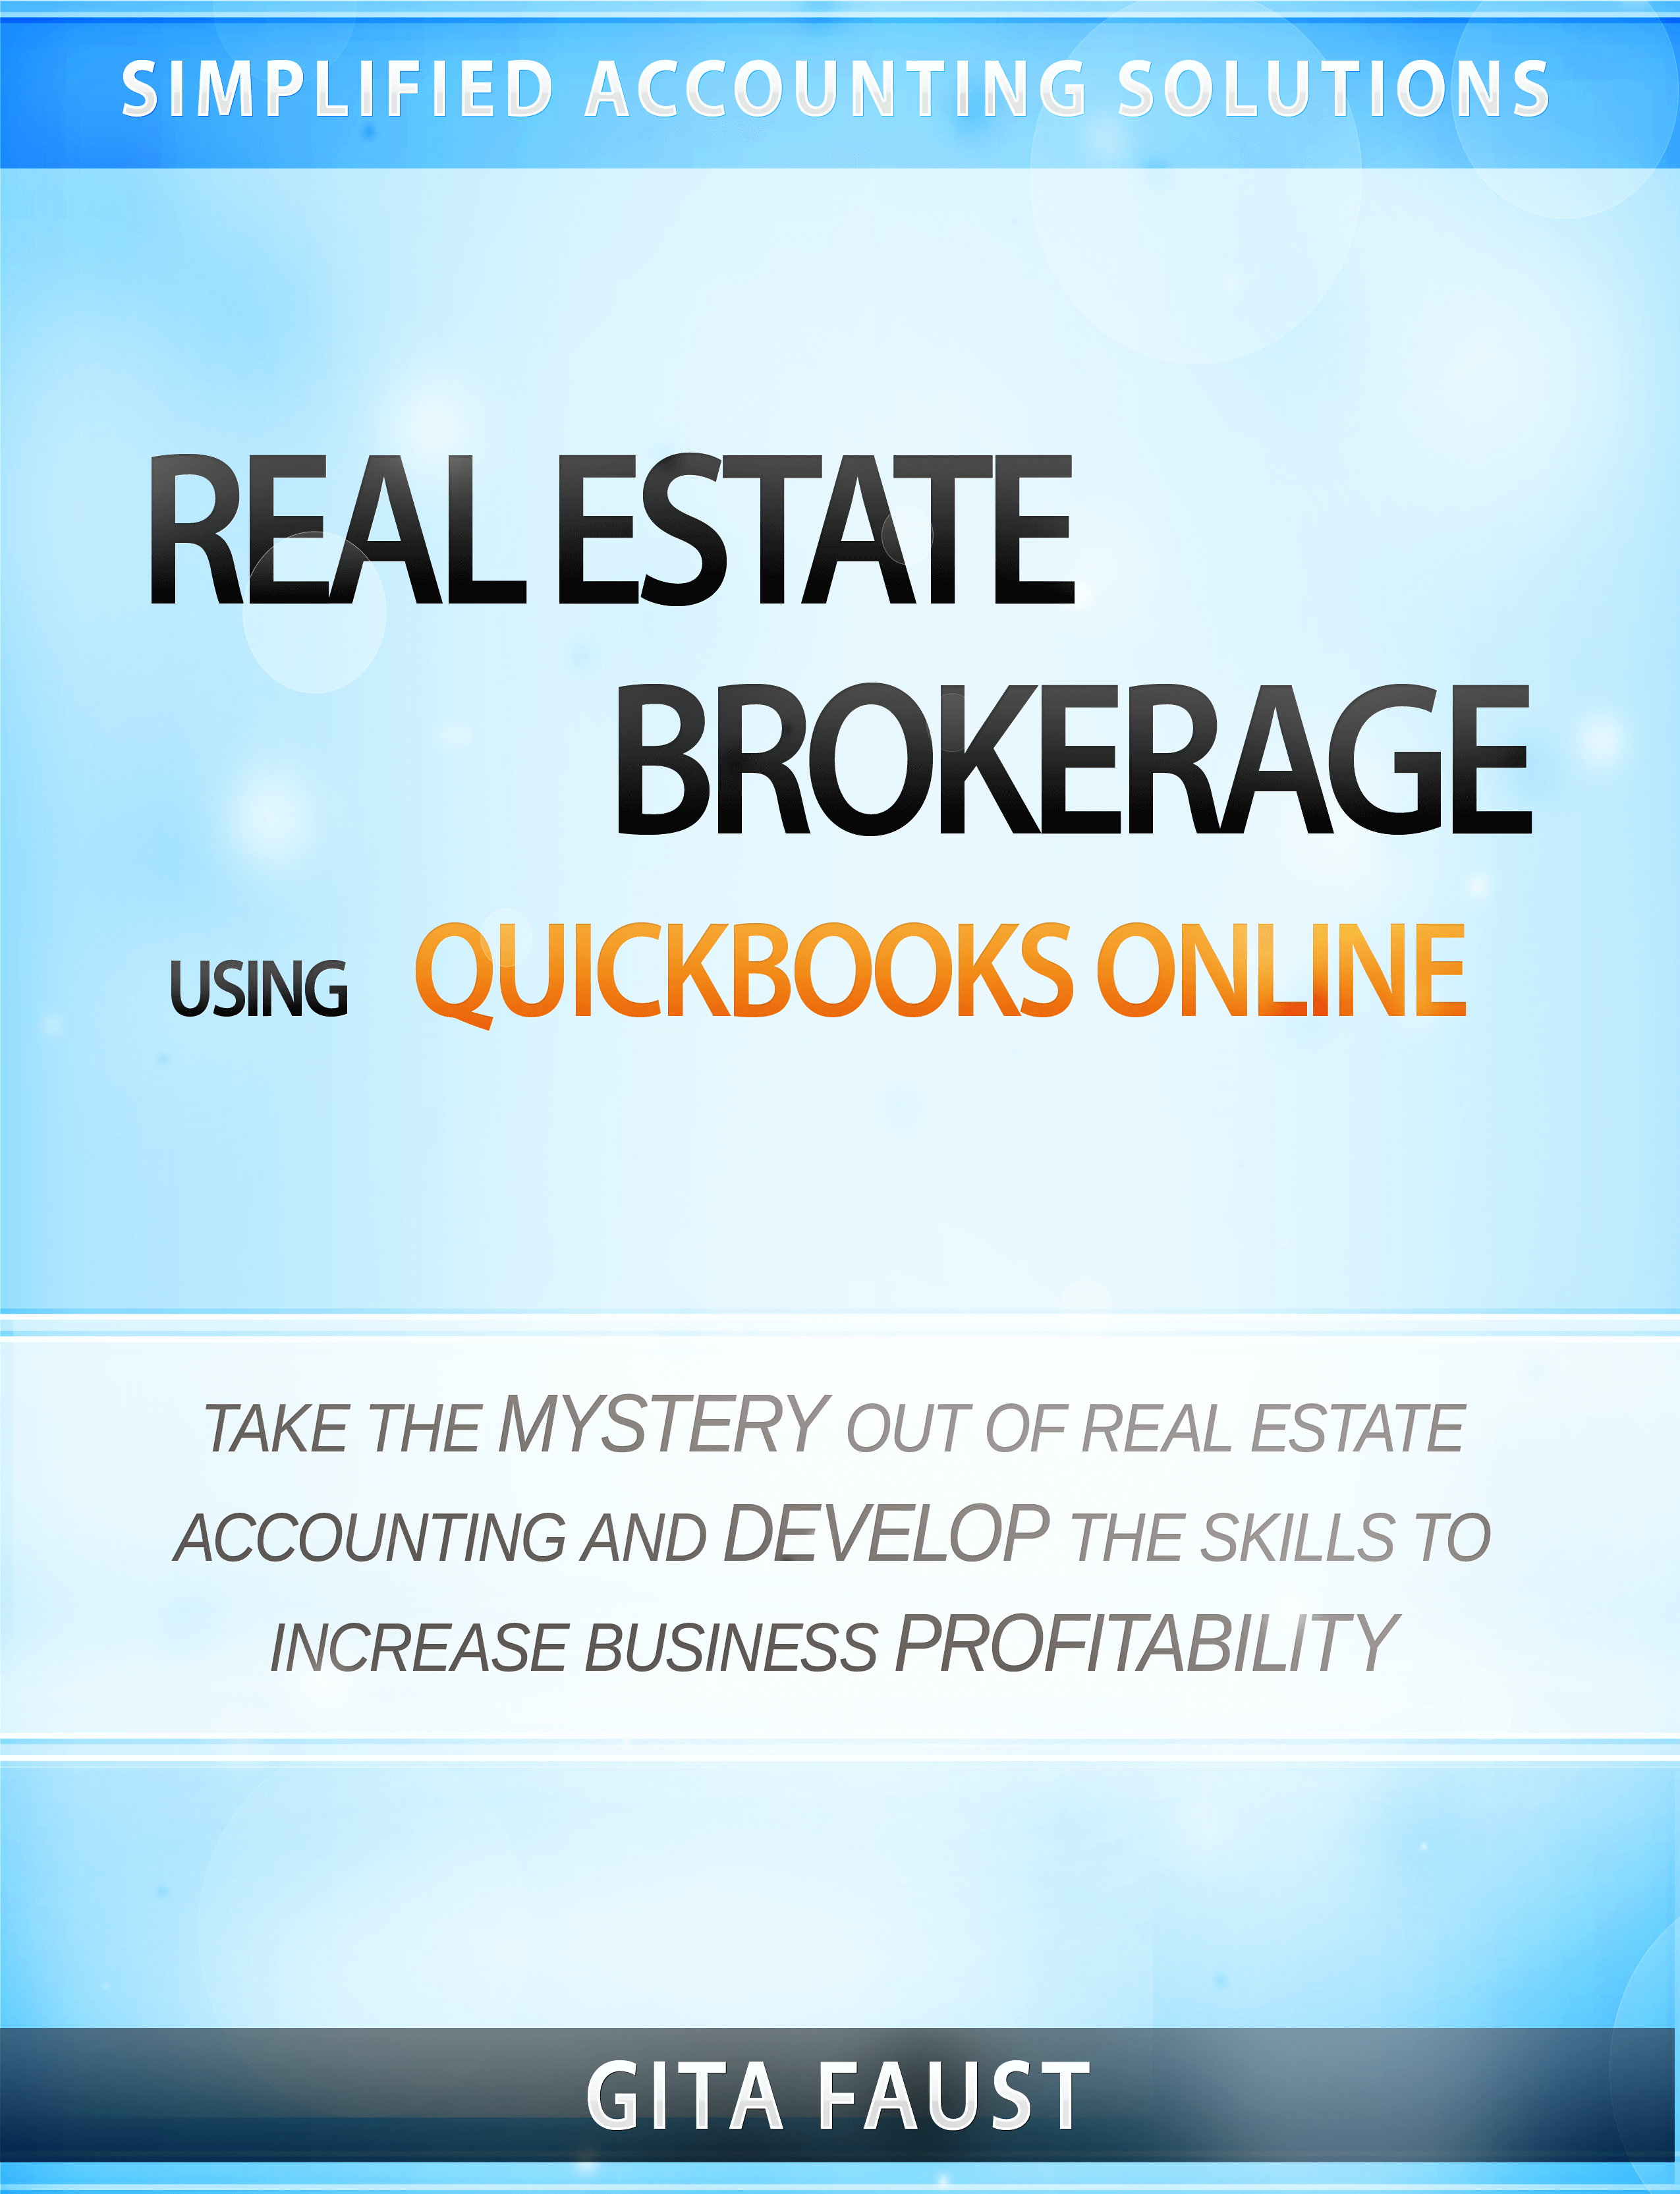 QuickBooks Online for Real Estate Brokers